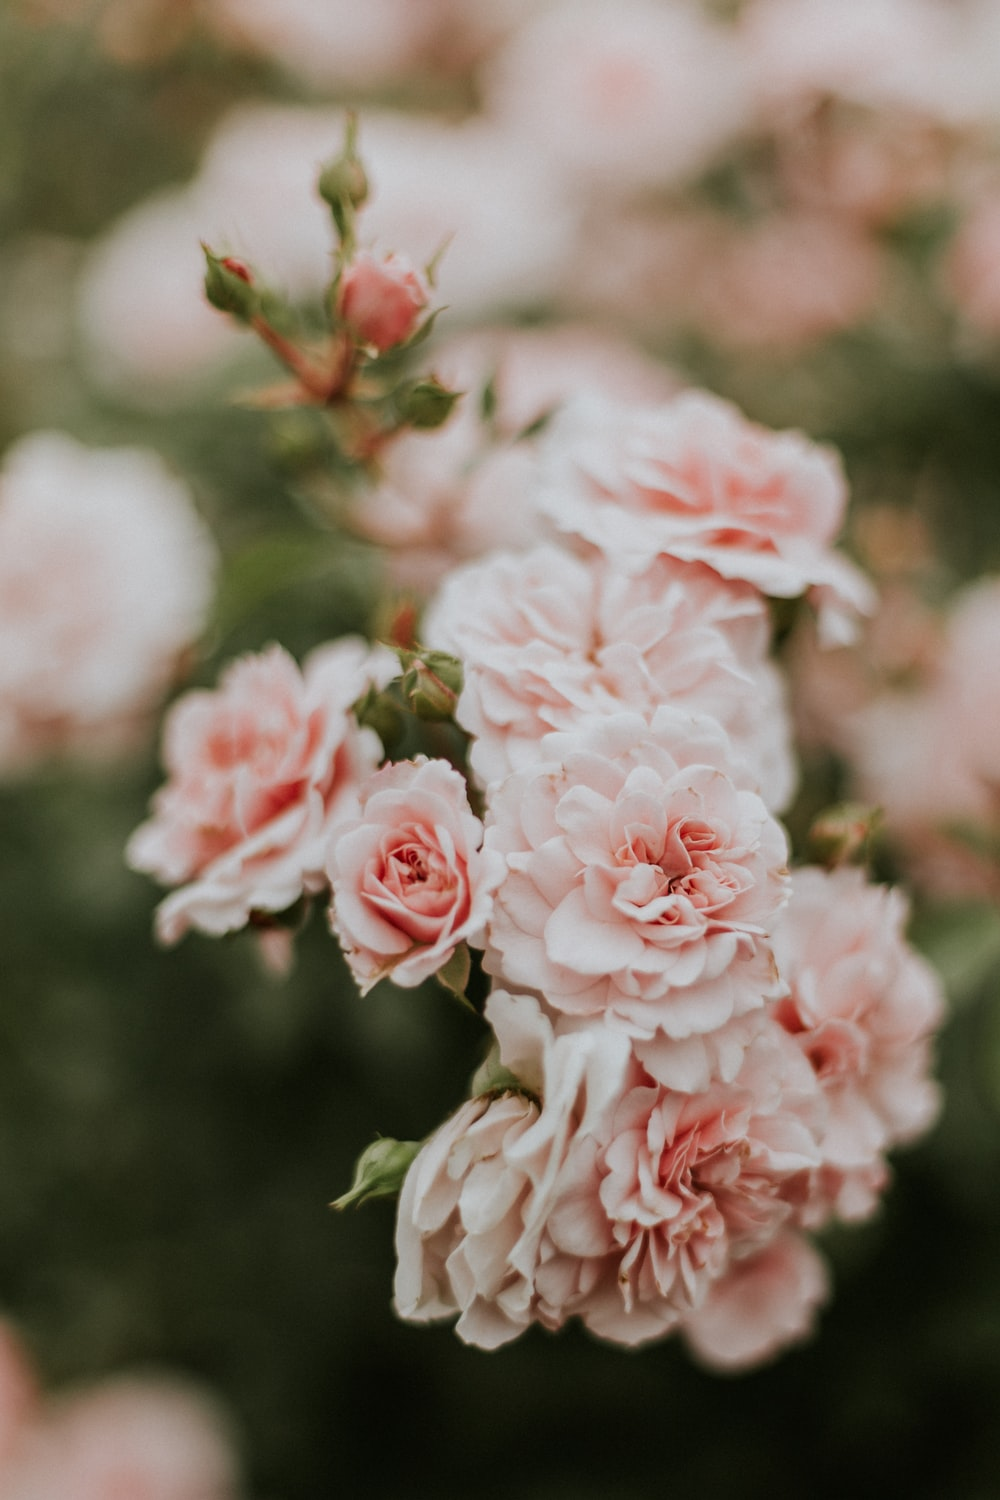 100 pink flower pictures download free images on unsplash pink flower pictures mightylinksfo